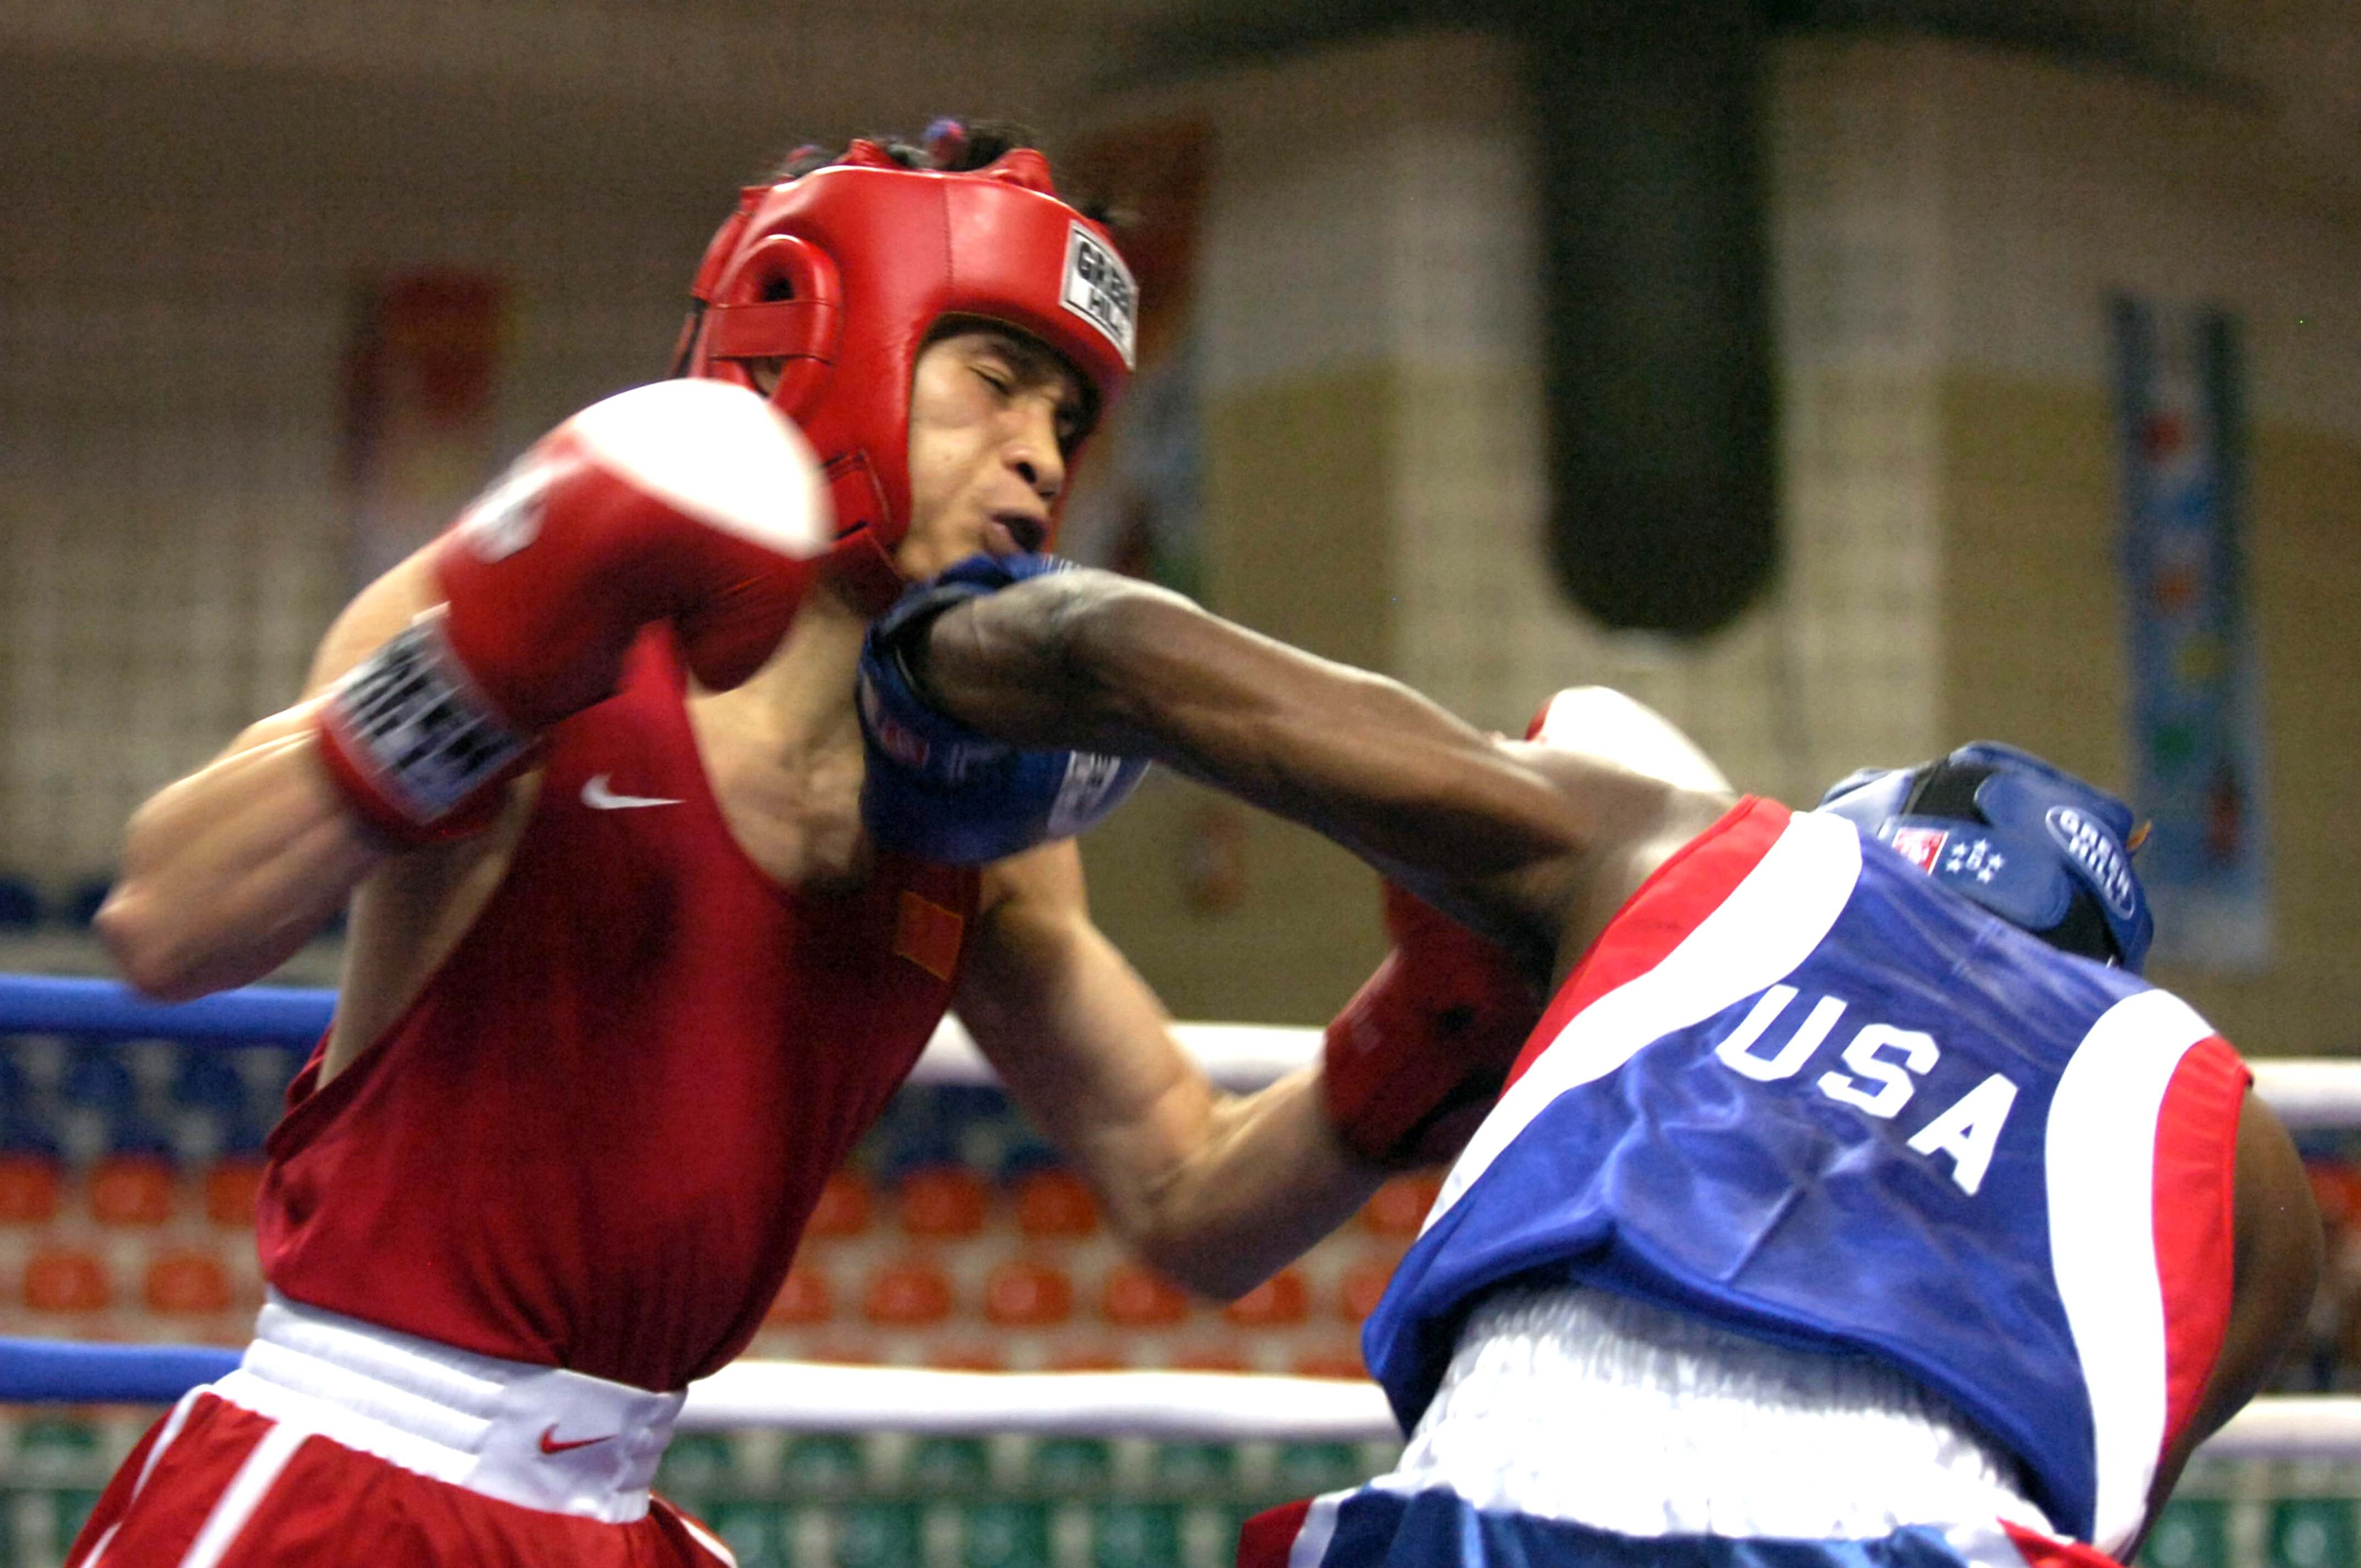 Image of two boxers competing in the ring with headgear